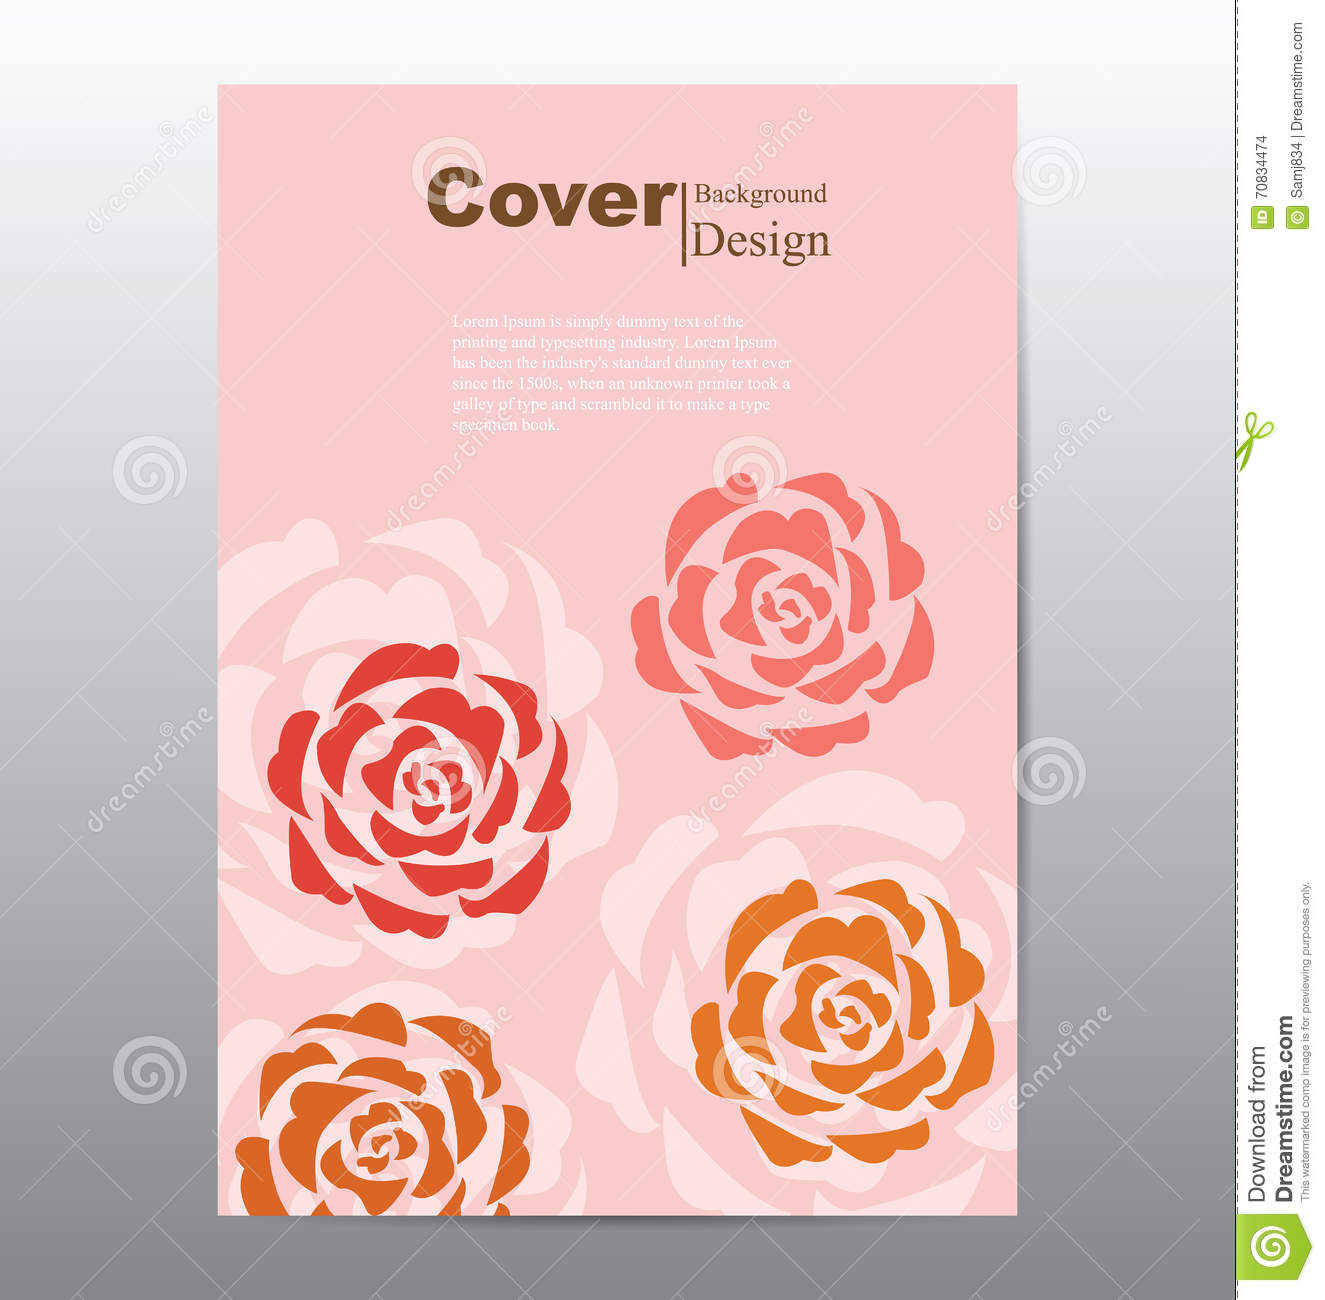 Book Cover Design Flower : Book cover with abstract flower background stock vector